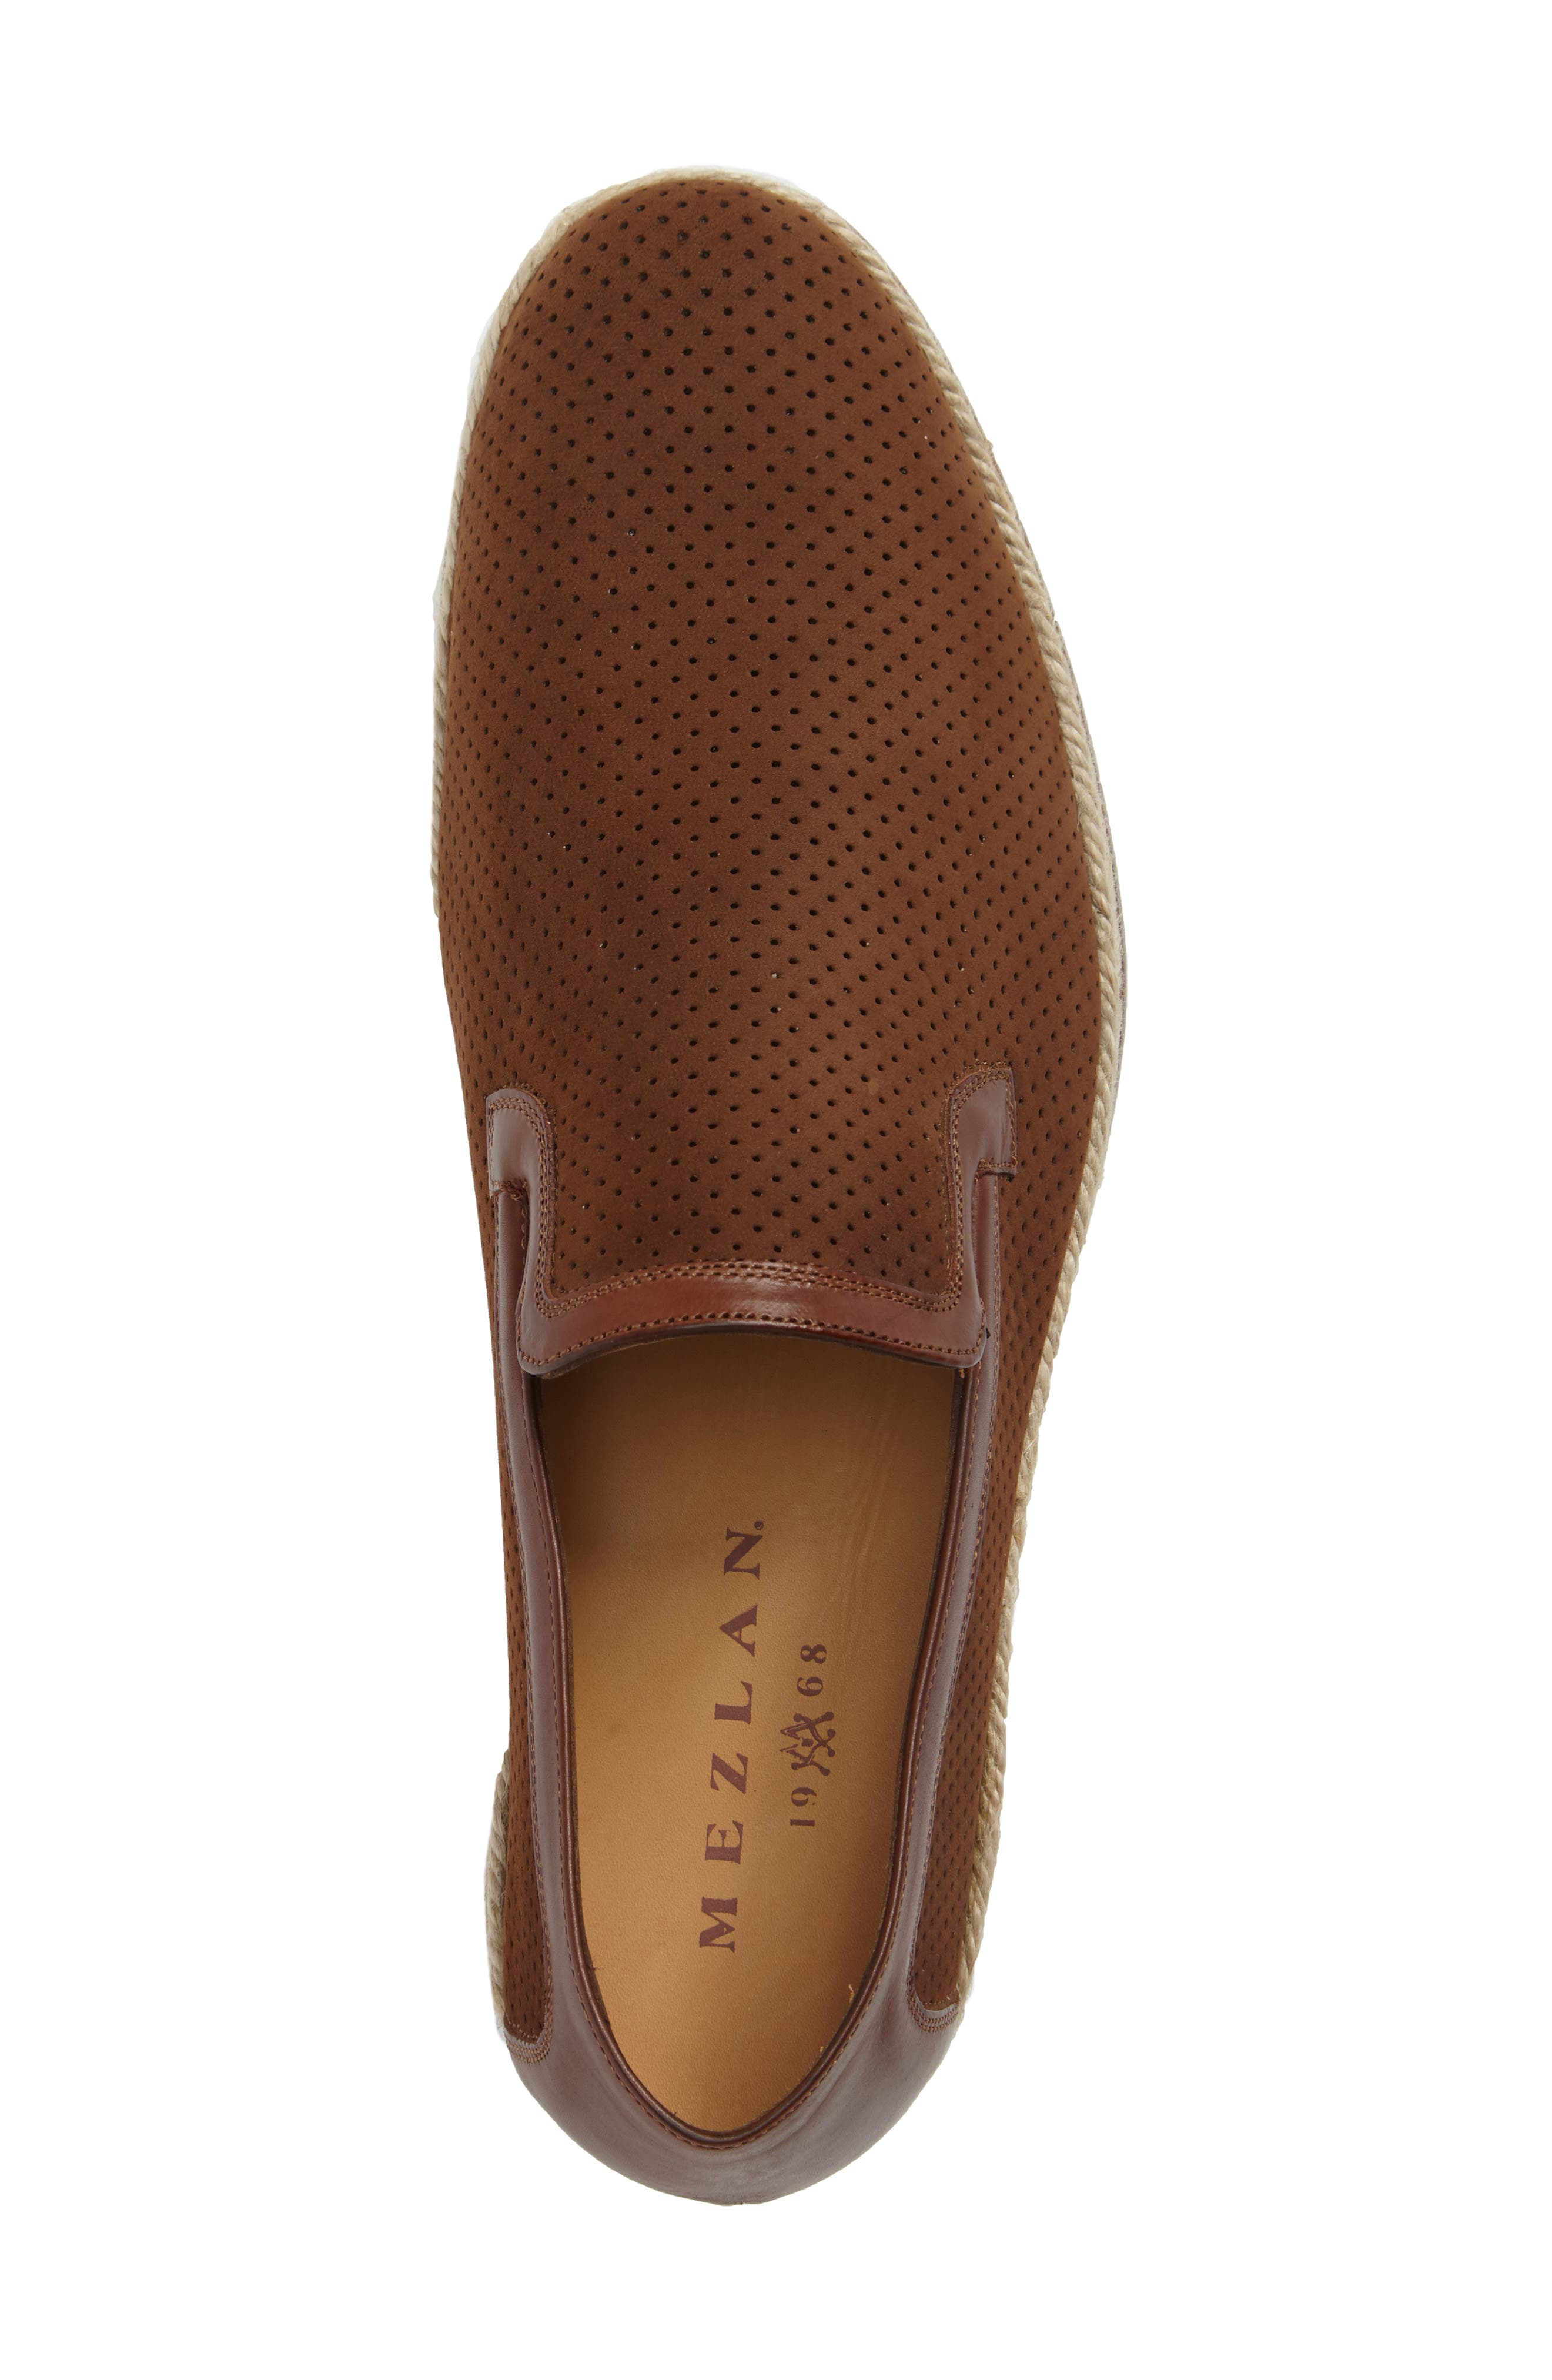 Marcet Perforated Loafer,                             Alternate thumbnail 5, color,                             200